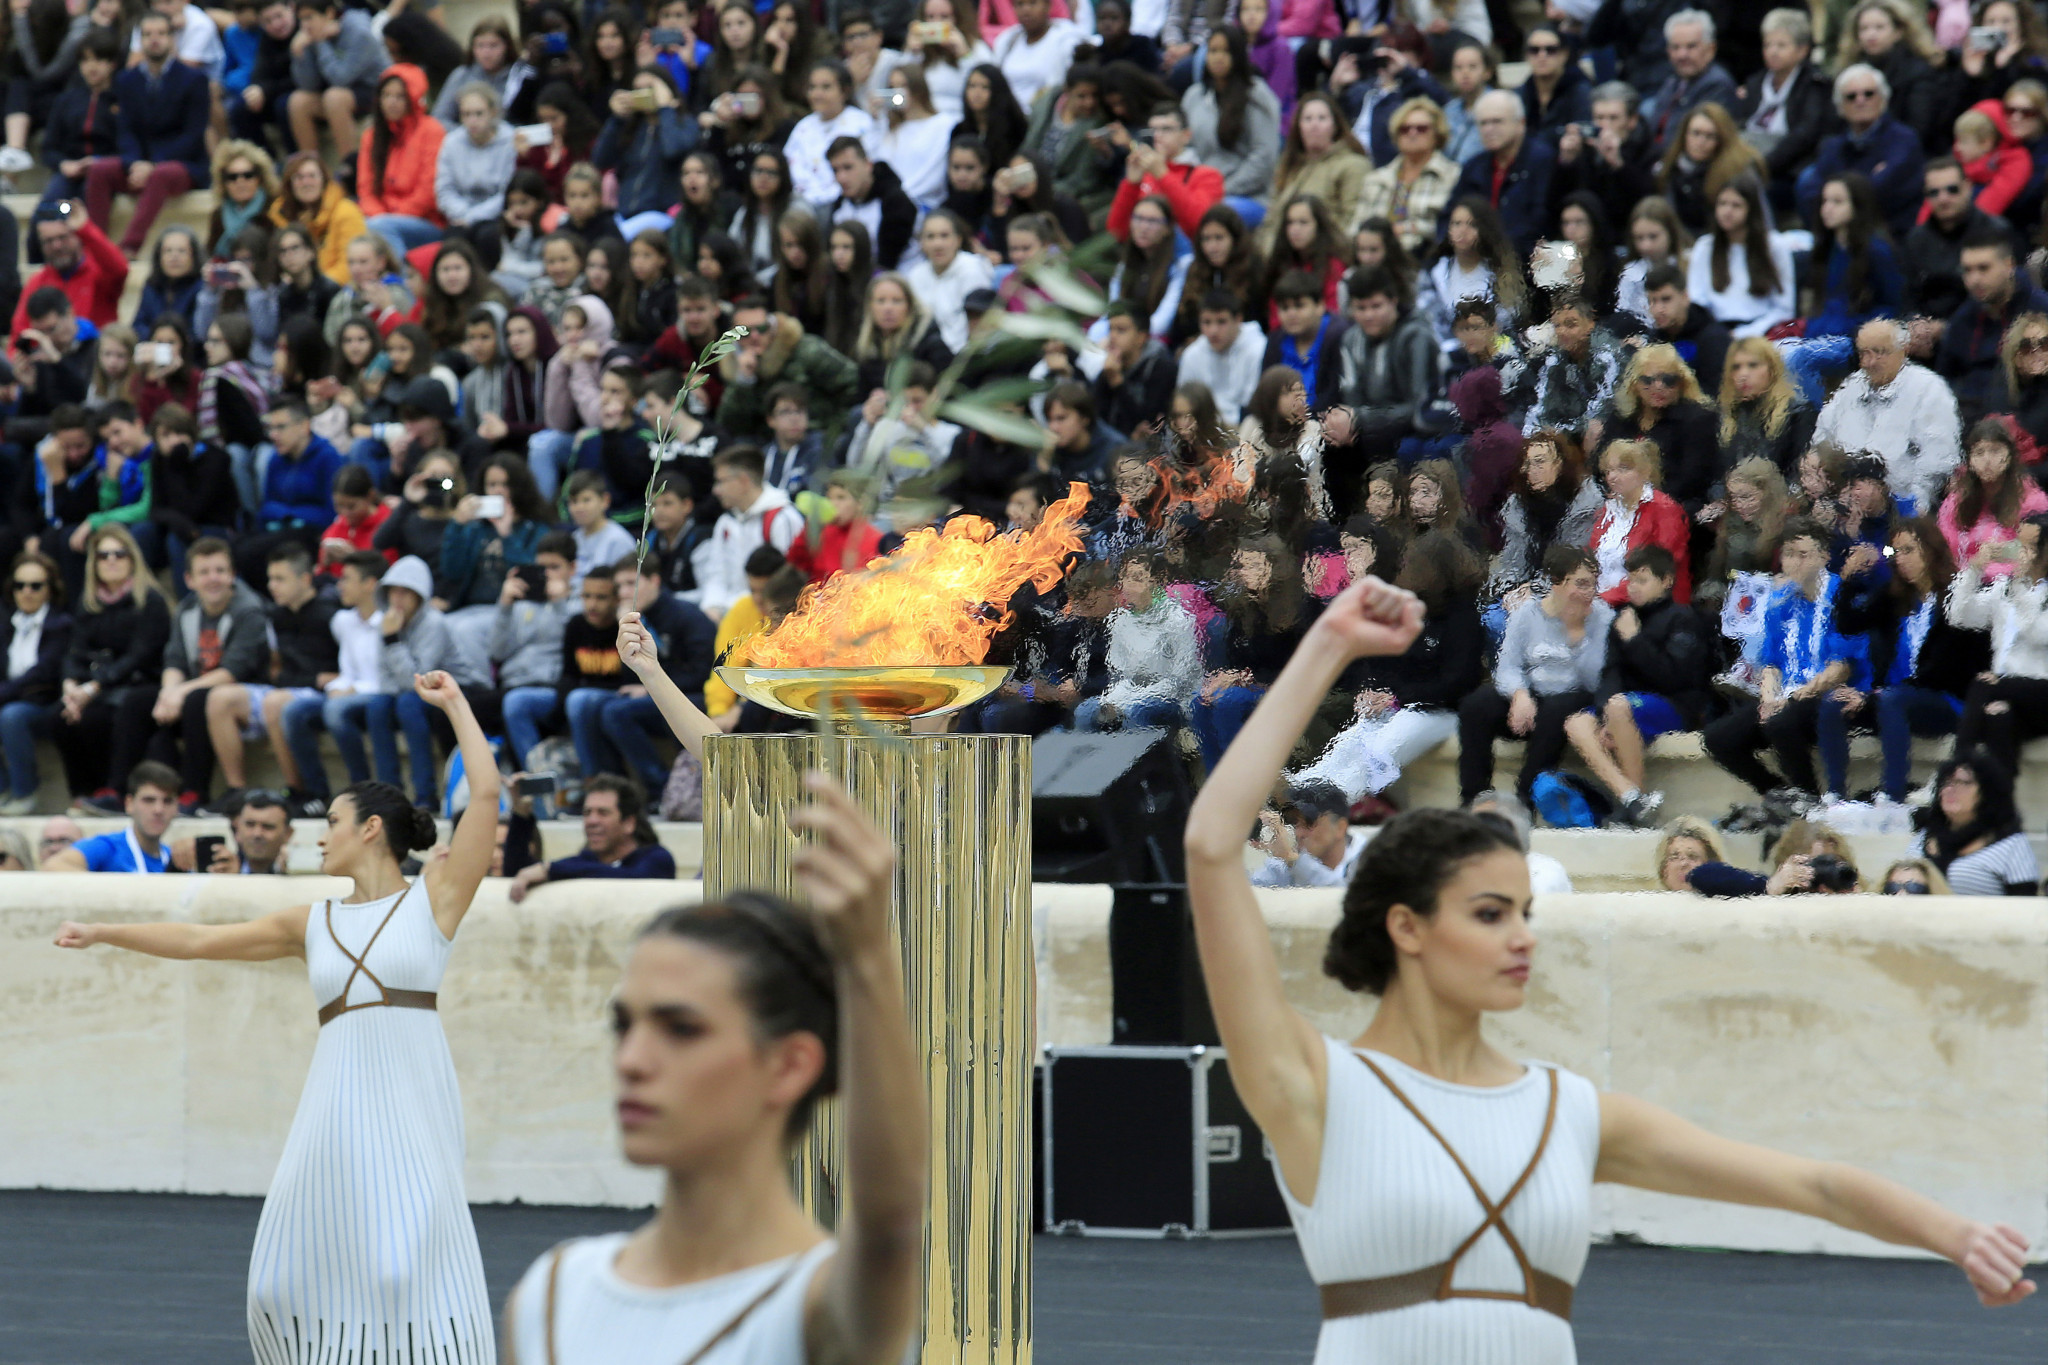 ''Let Everyone Shine'' The 2018 torch song made its Olympic and international debut in the historic Panathinaiko Stadium in Athens ©Getty Images